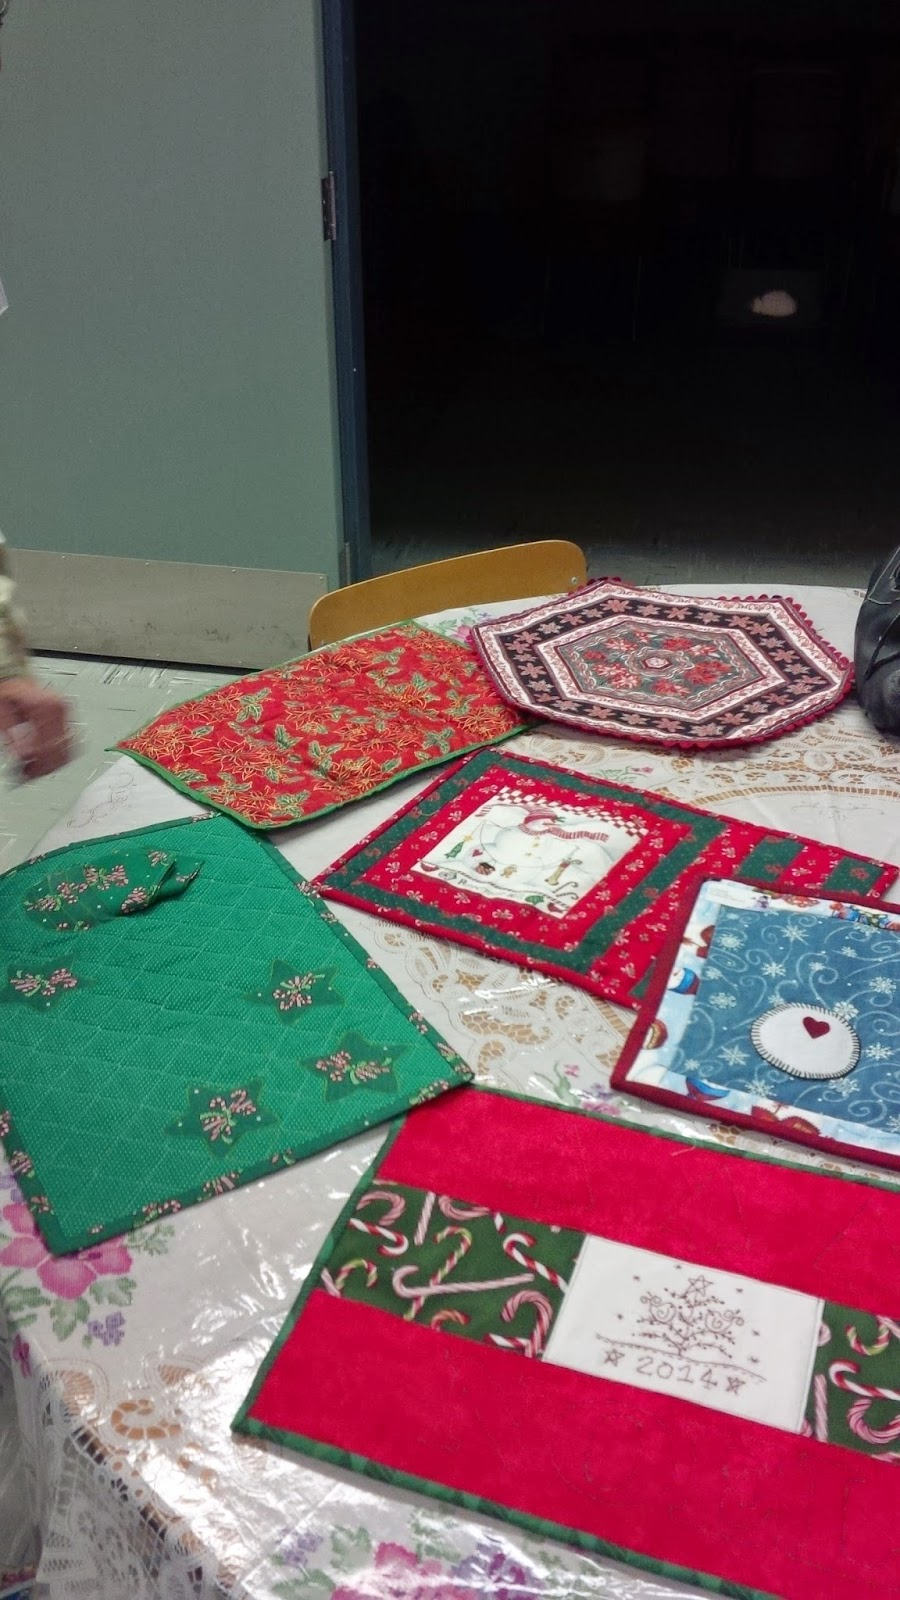 Weyburn Crocus Quilters: Crocus Quilter Guild Christmas Party